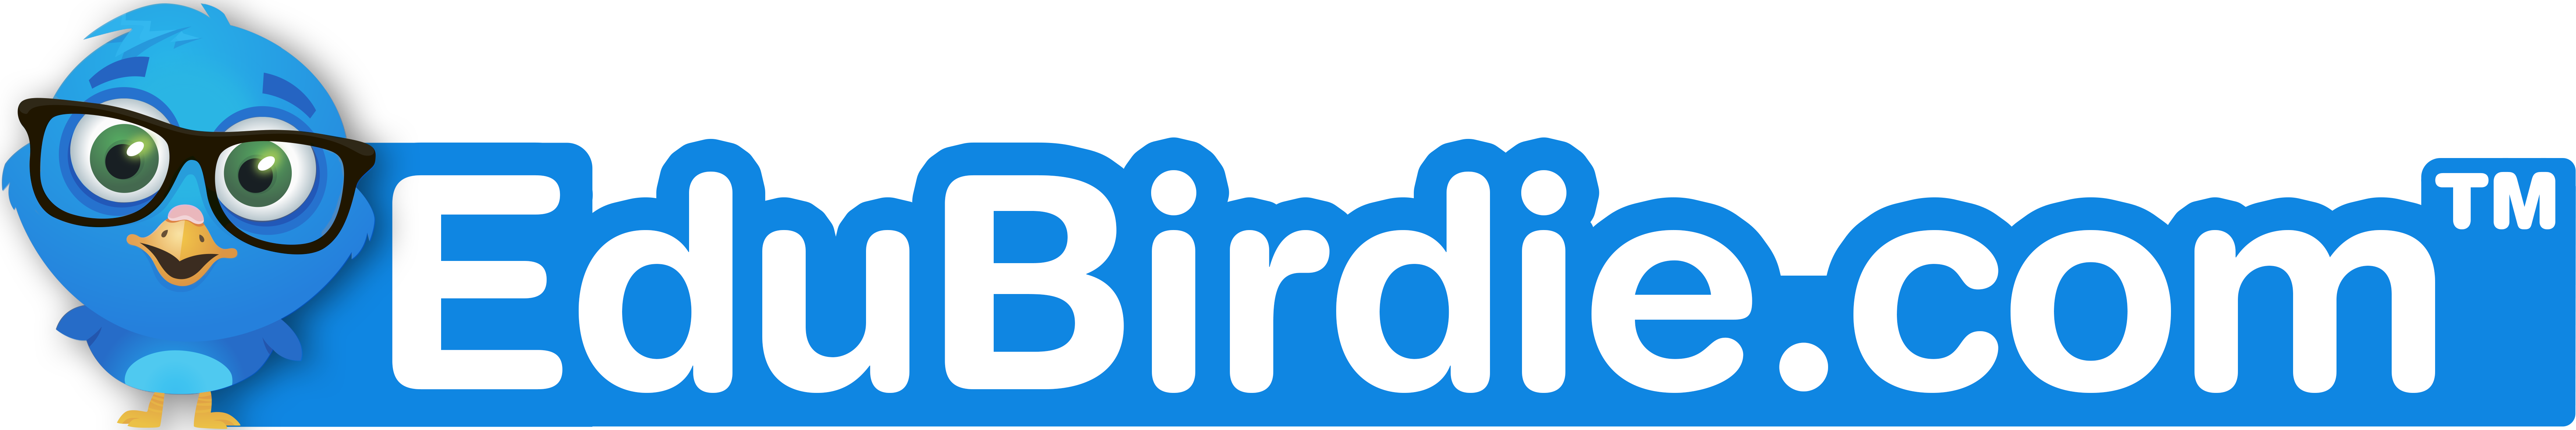 EduBirdie - The professional essay writing service for students who can't even